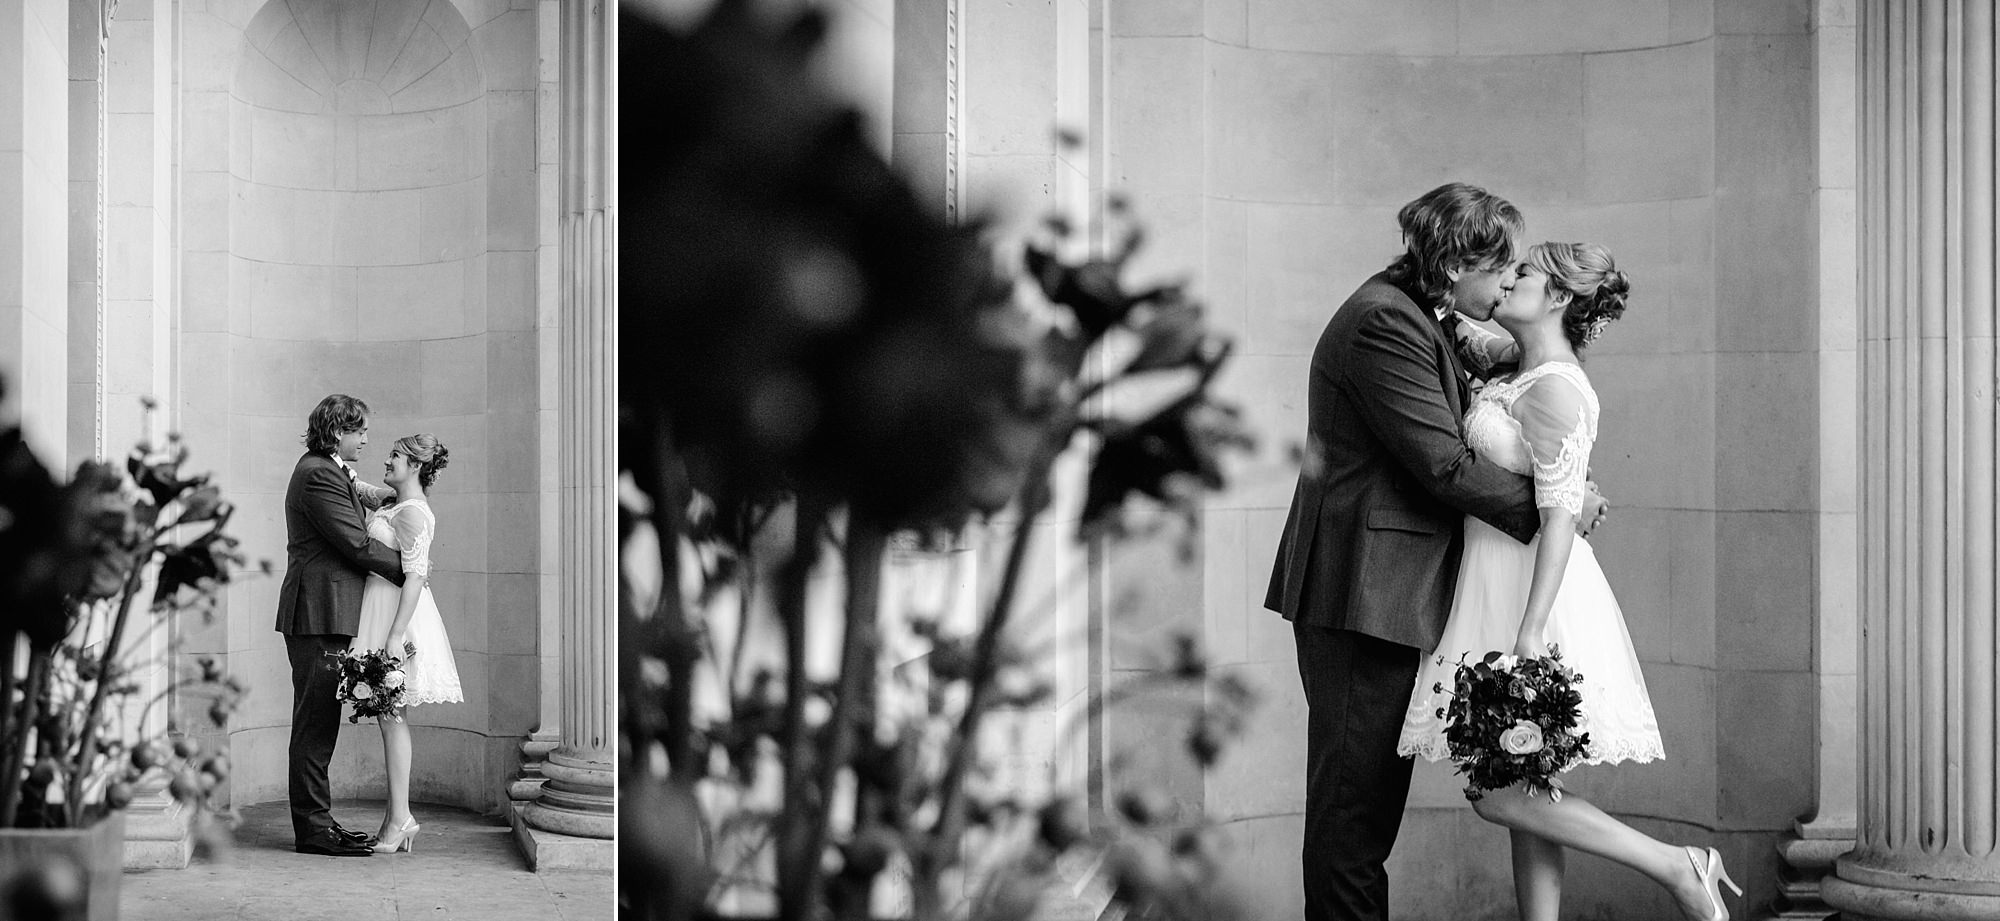 Old Marylebone Town Hall wedding photography bride and groom kiss